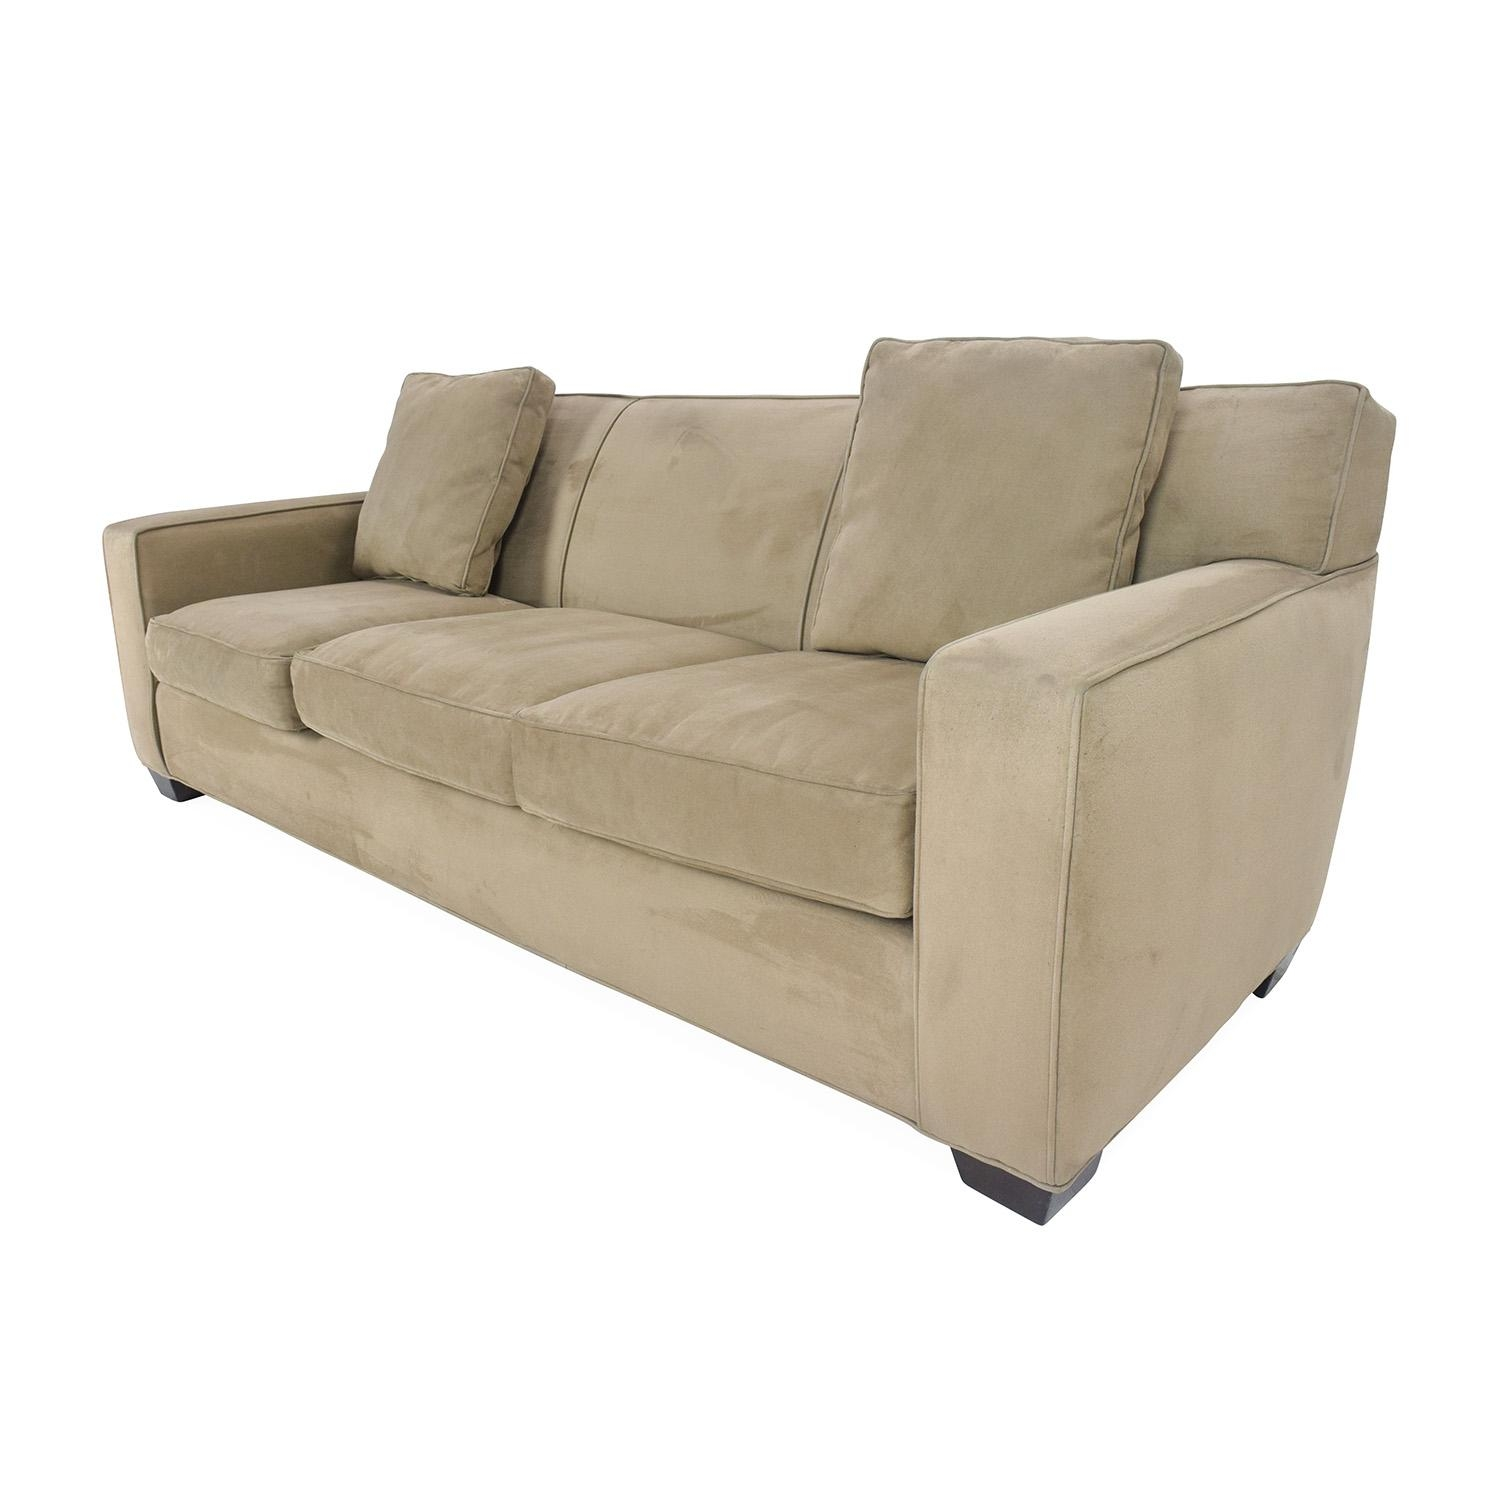 78% Off – Crate And Barrel Crate And Barrel Cameron Sofa / Sofas Intended For Crate And Barrel Futon Sofas (View 17 of 20)